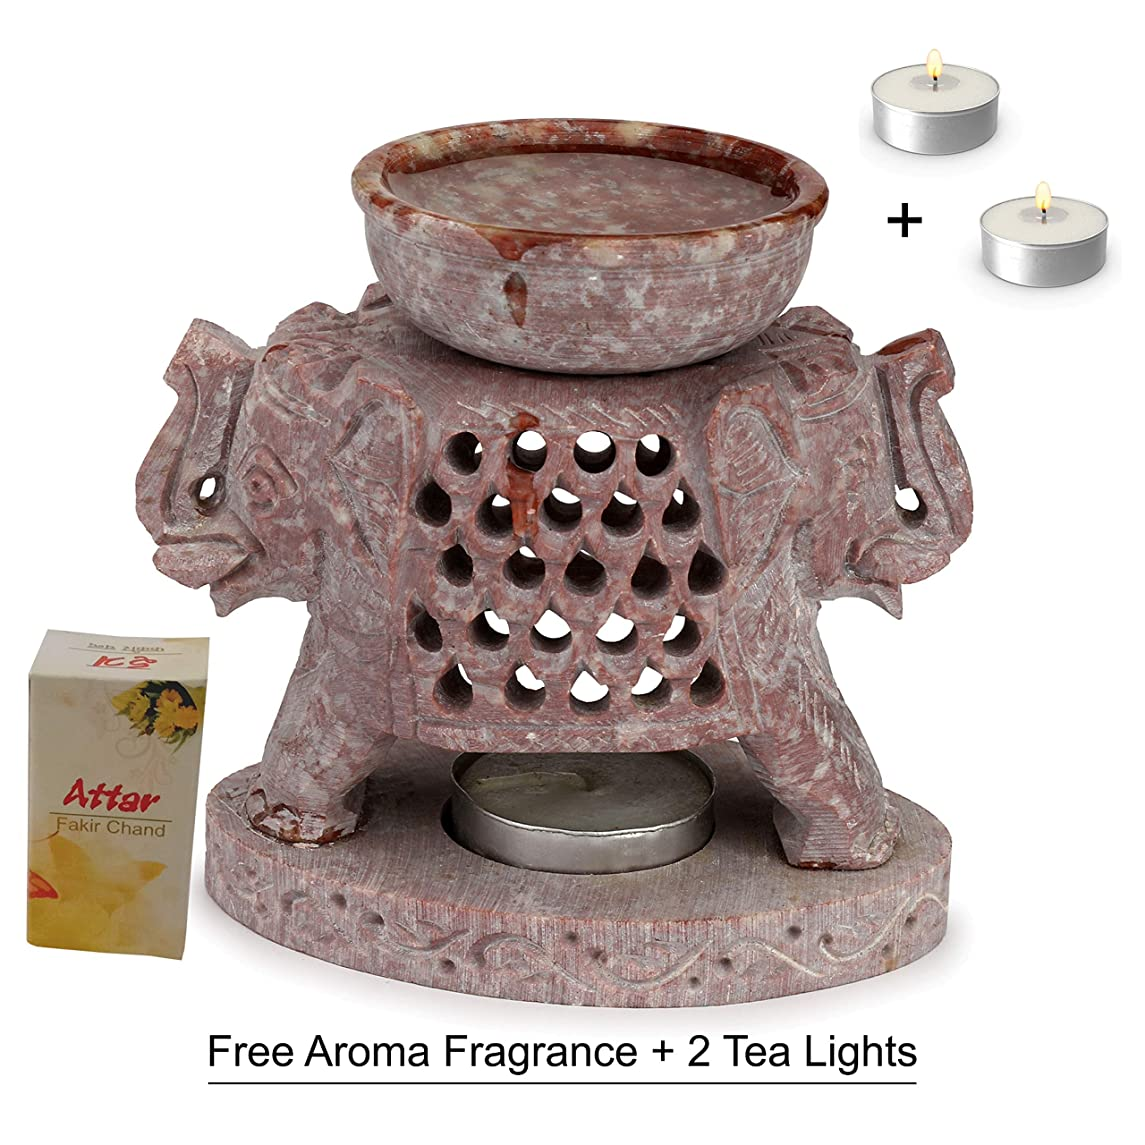 Carry ME Handcrafted Marble Soapstone Elephant Aroma Diffuser/Oil Warmer/Wax Burner for Home/Kitchen Decor- Free 2 Long Lasting Candle Tea Lights and 2.5 ML Bottle of Aroma Oil (Mogra)